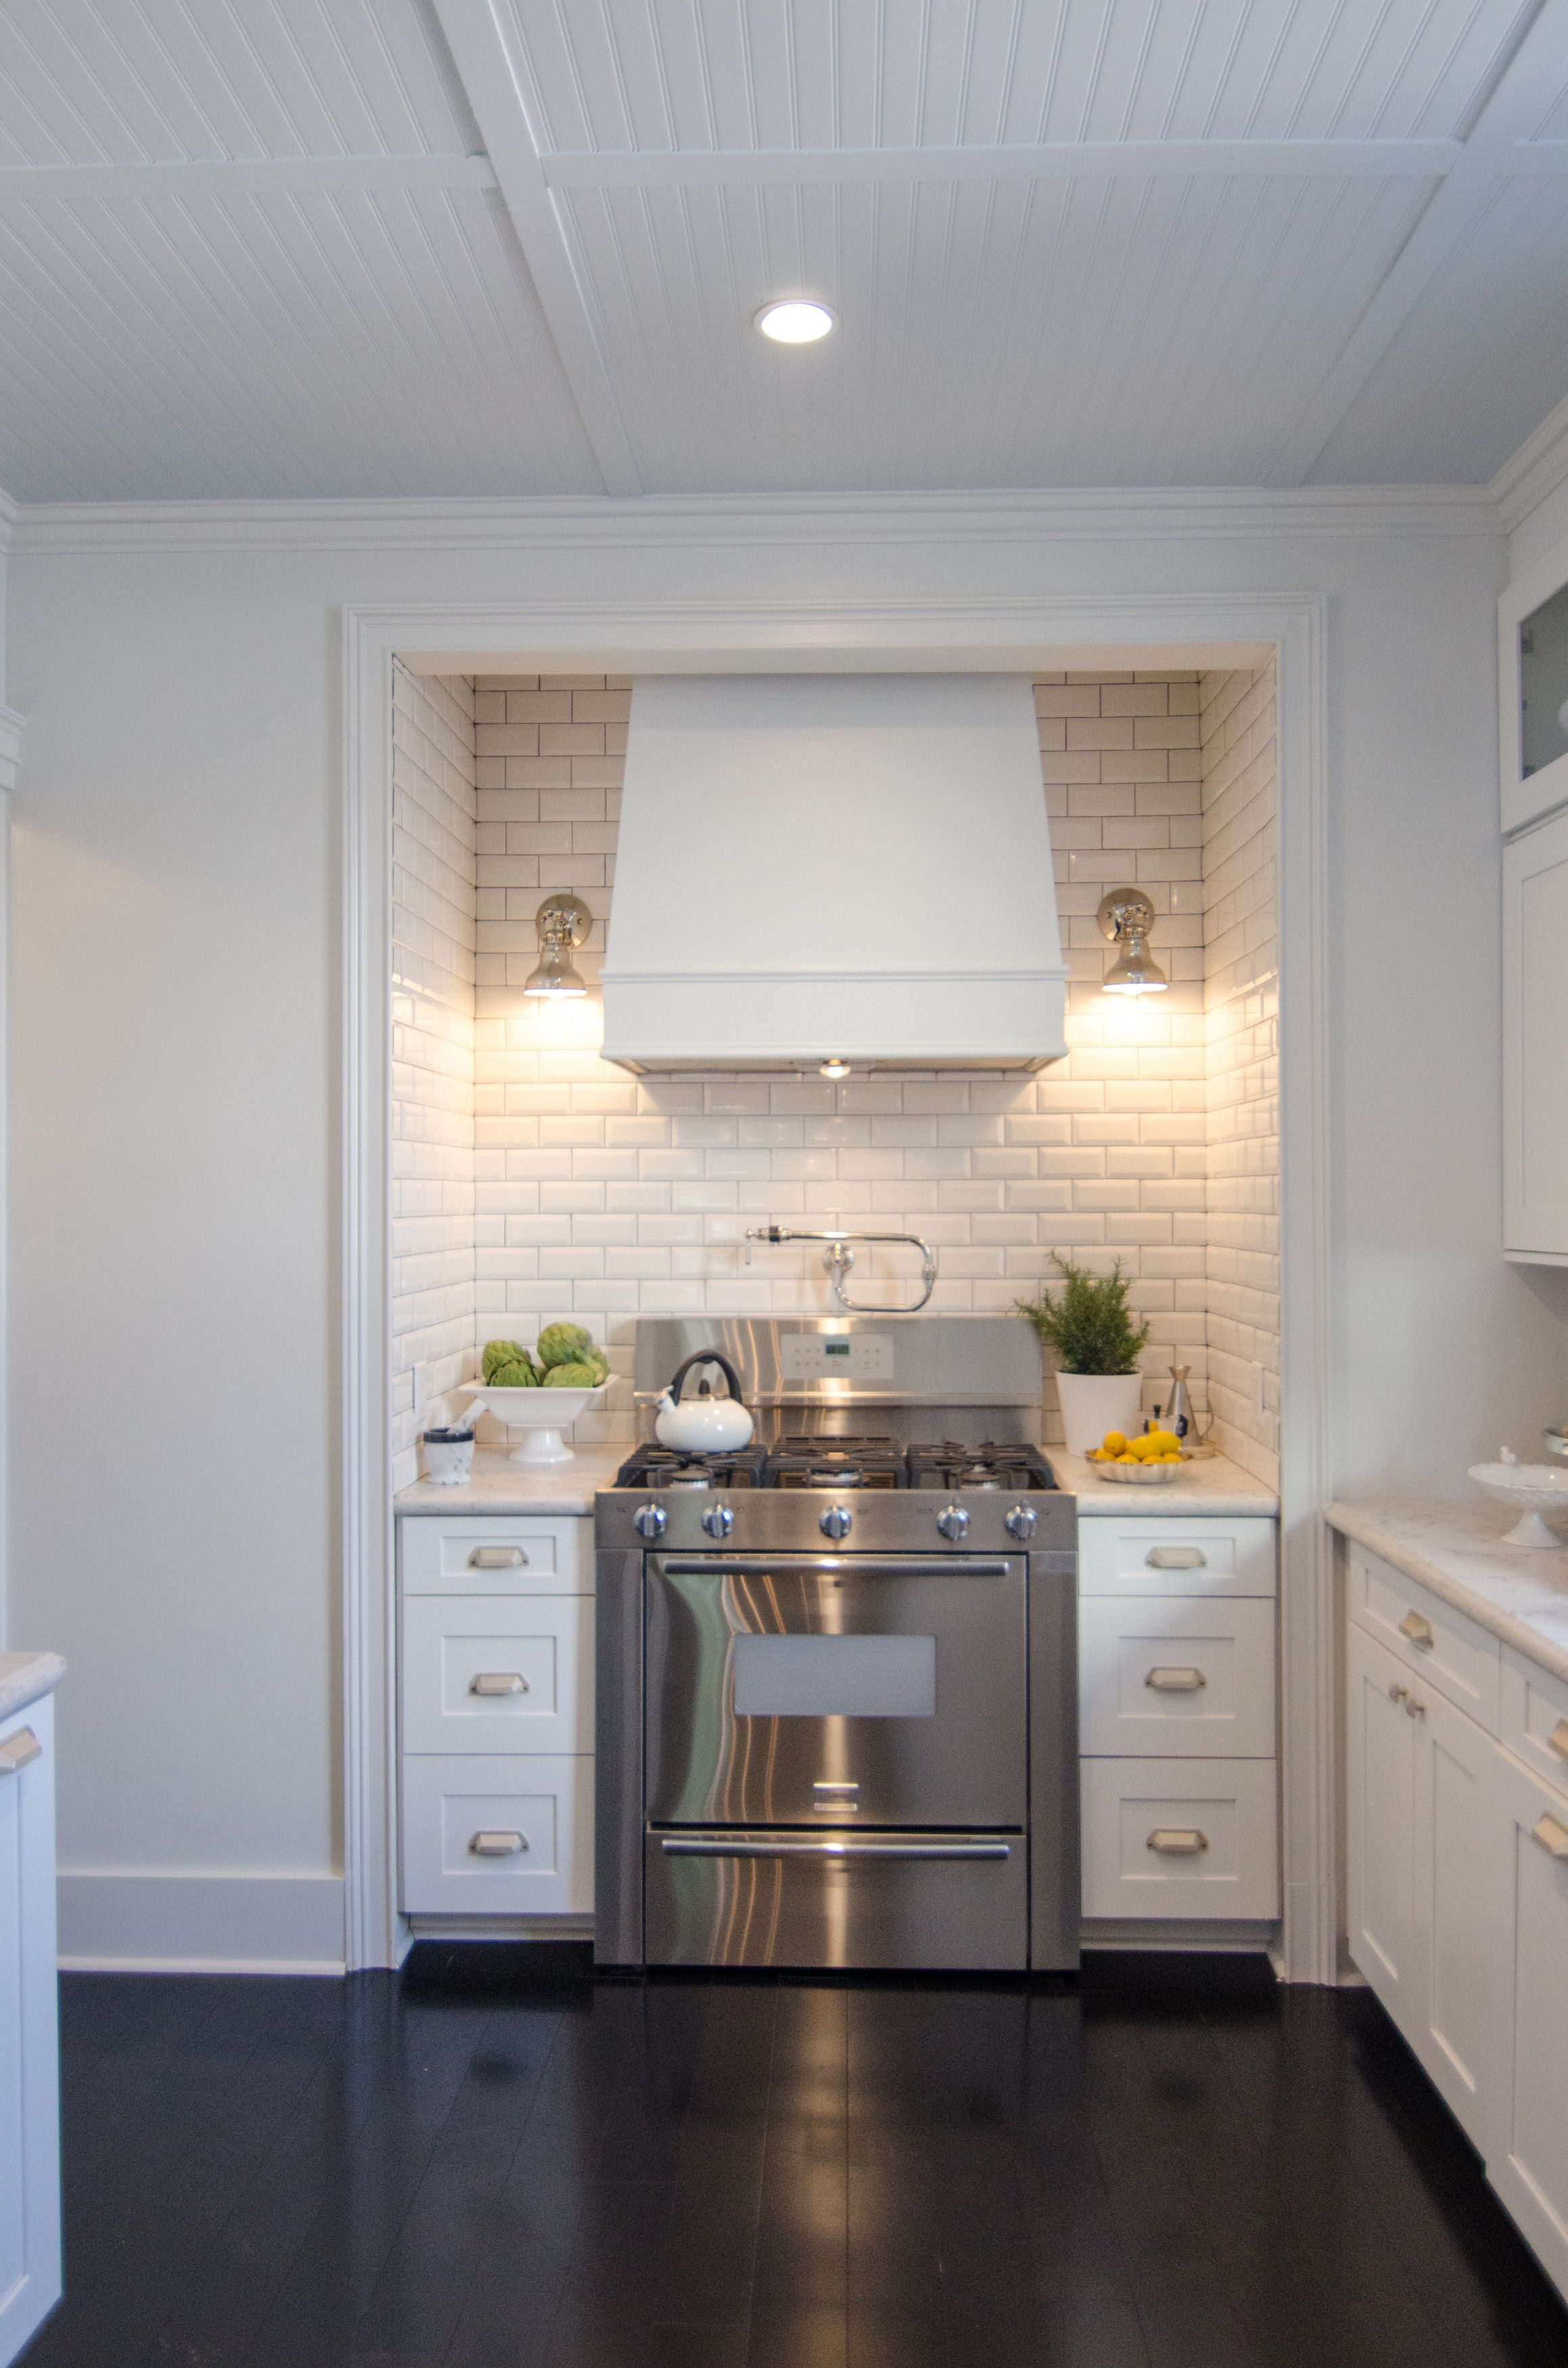 Ceiling Tiles For Kitchen Sconces In The Kitchen Stove Nooks And Kitchens